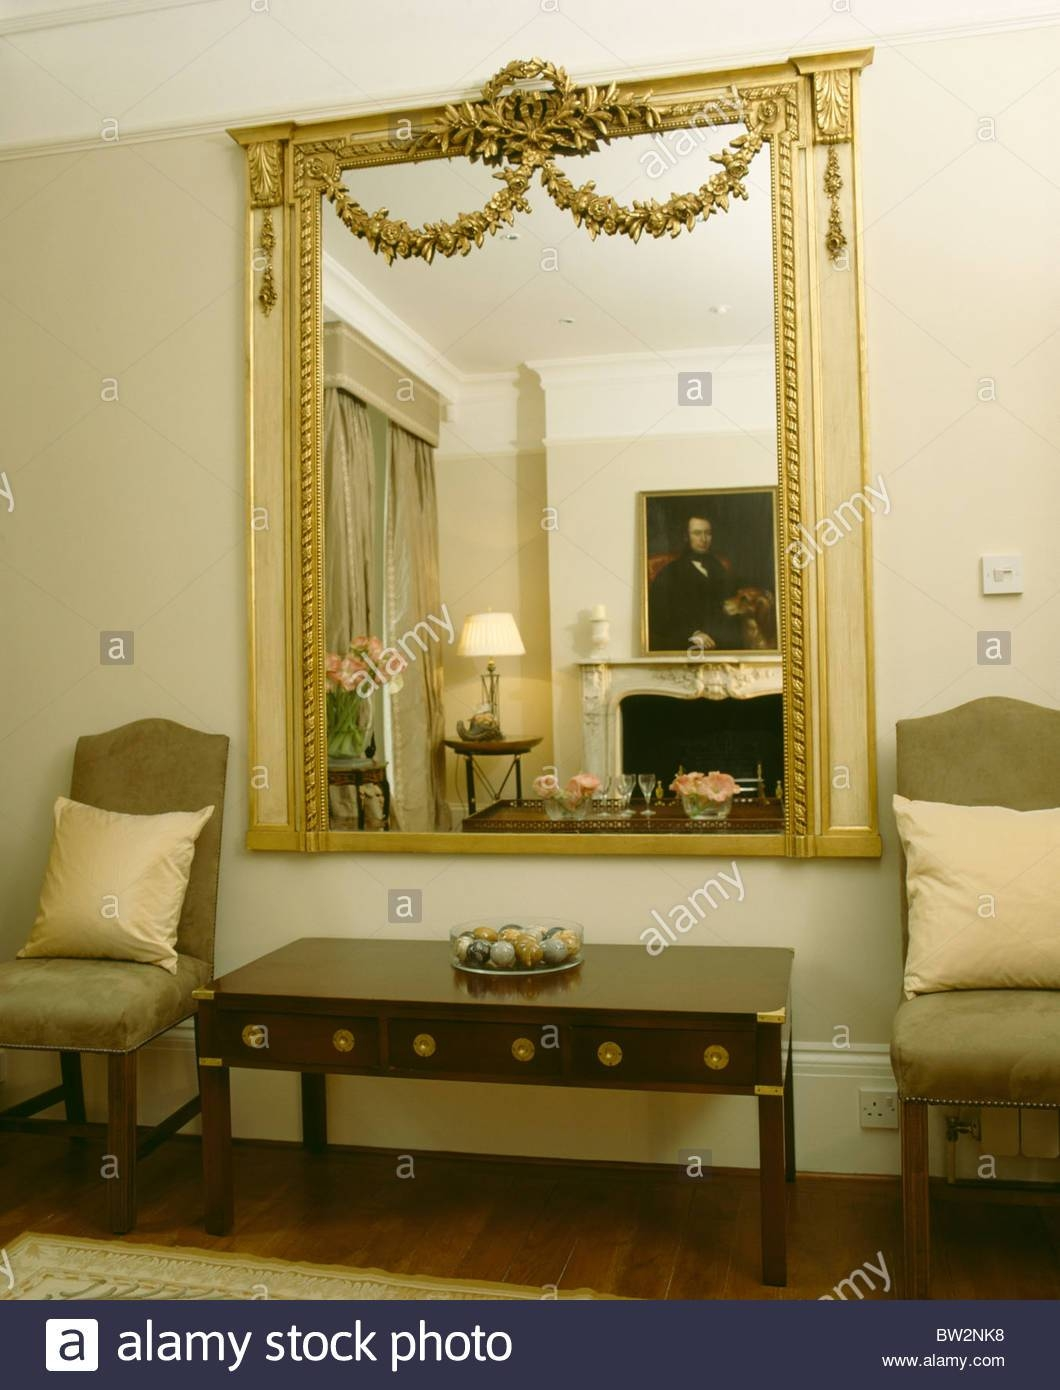 Perfect How To Decorate Around A Large Wall Mirror Collection - All ...